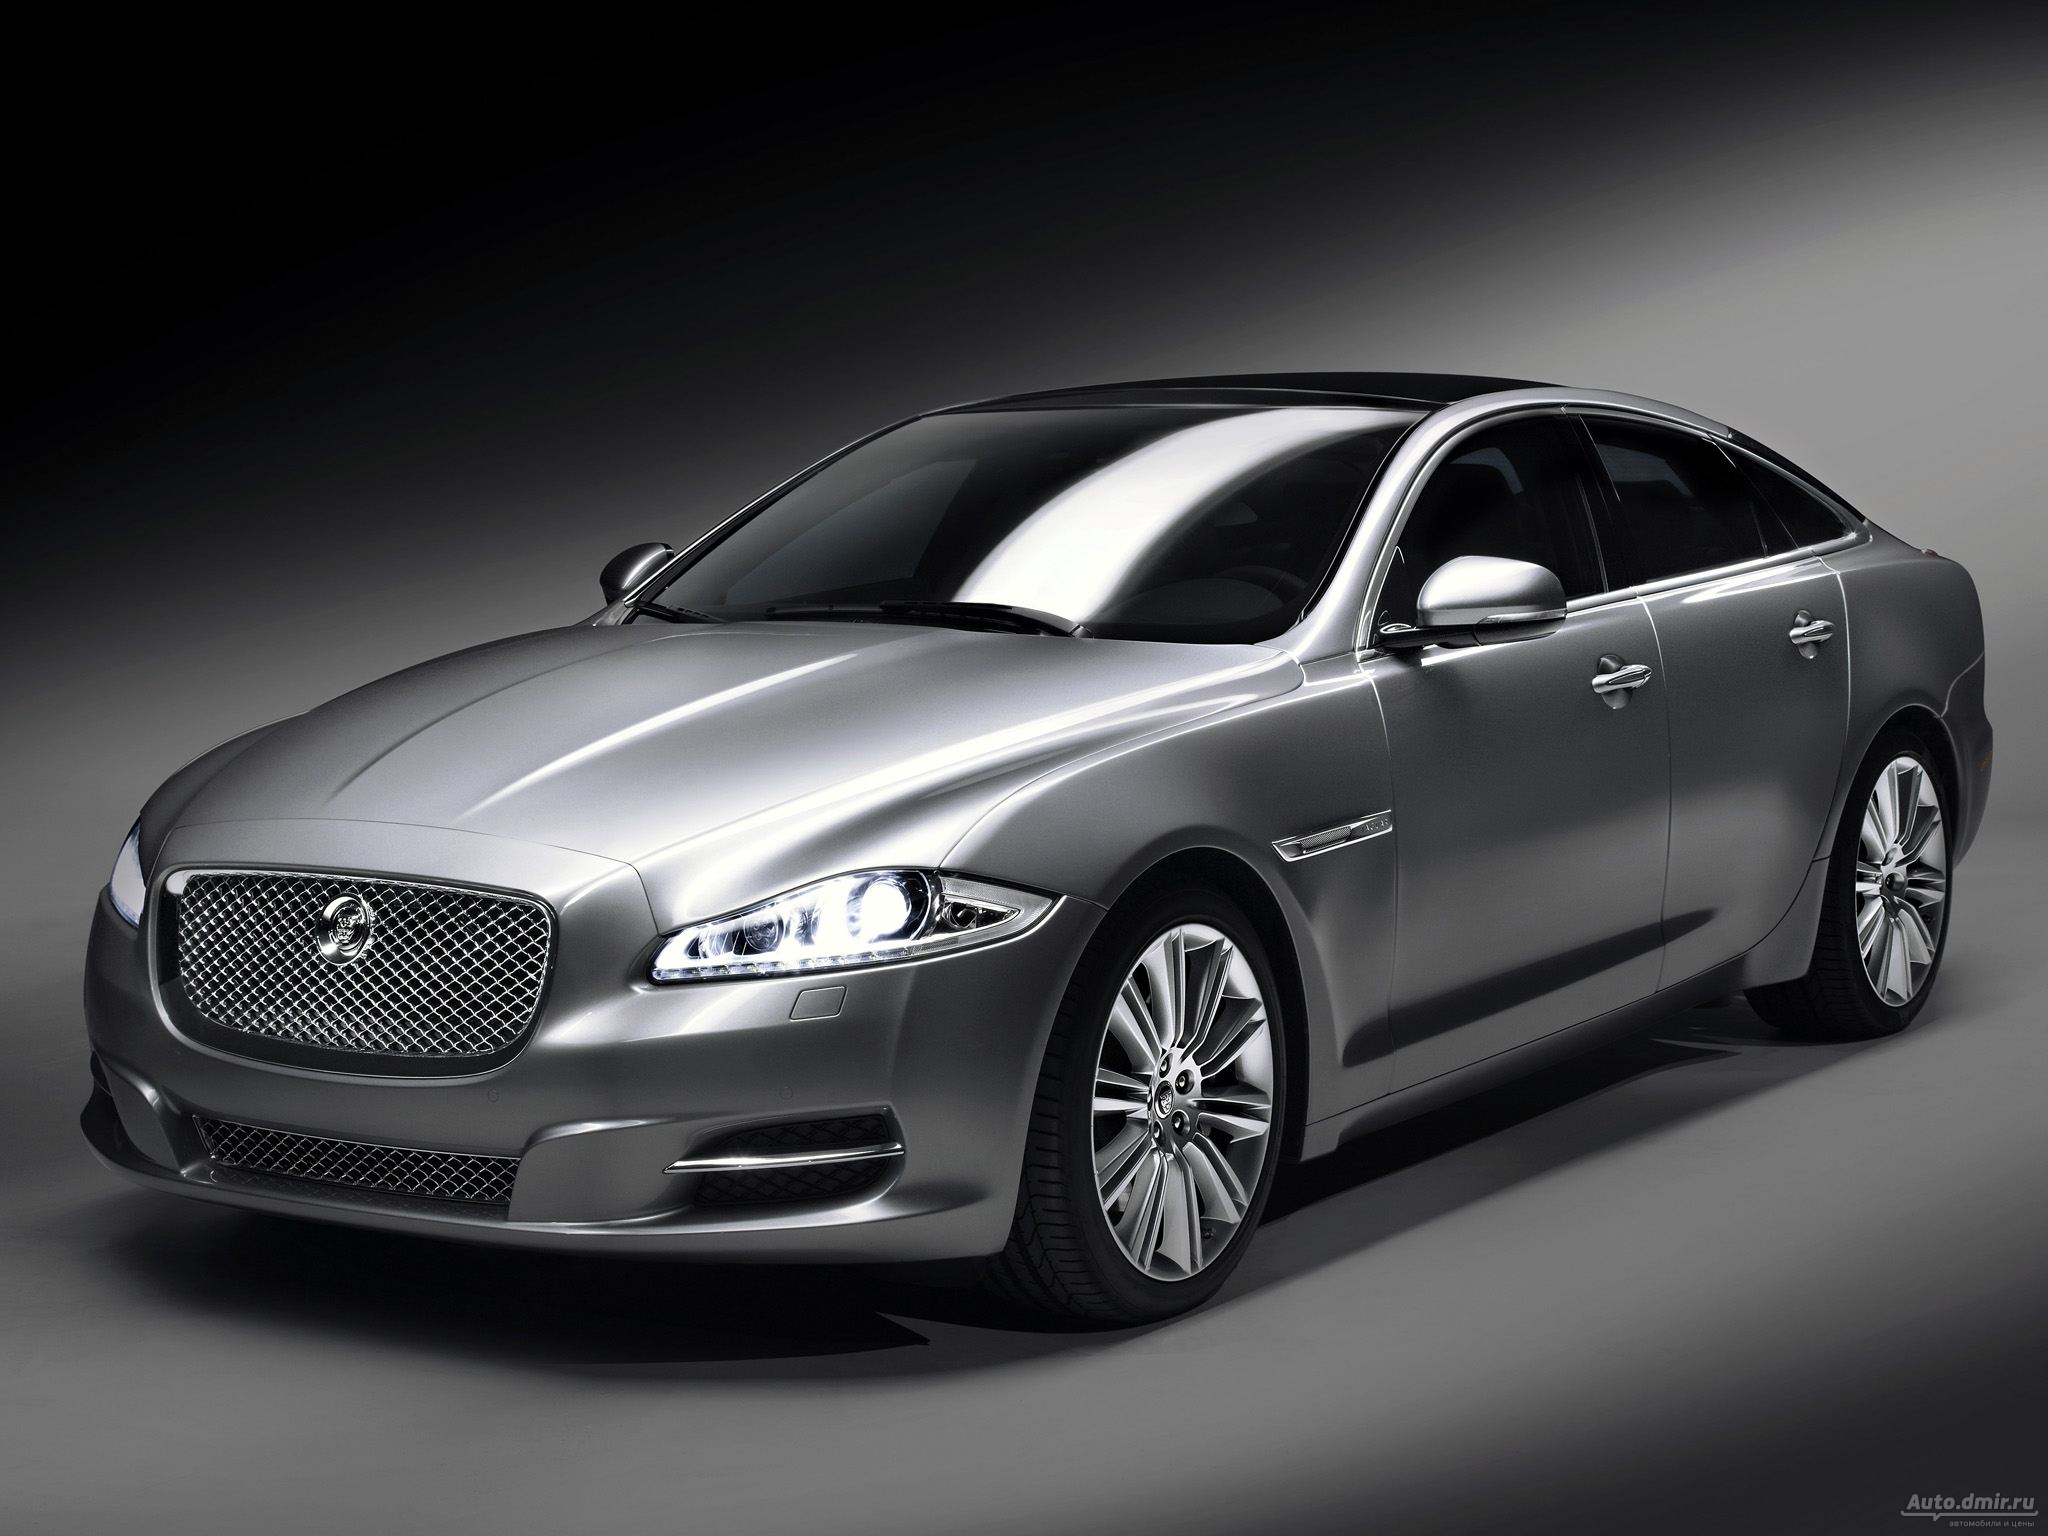 5061d5fb7fa52bcfffeae0eda5f0ee0e Great Description About 2010 Jaguar Xj for Sale